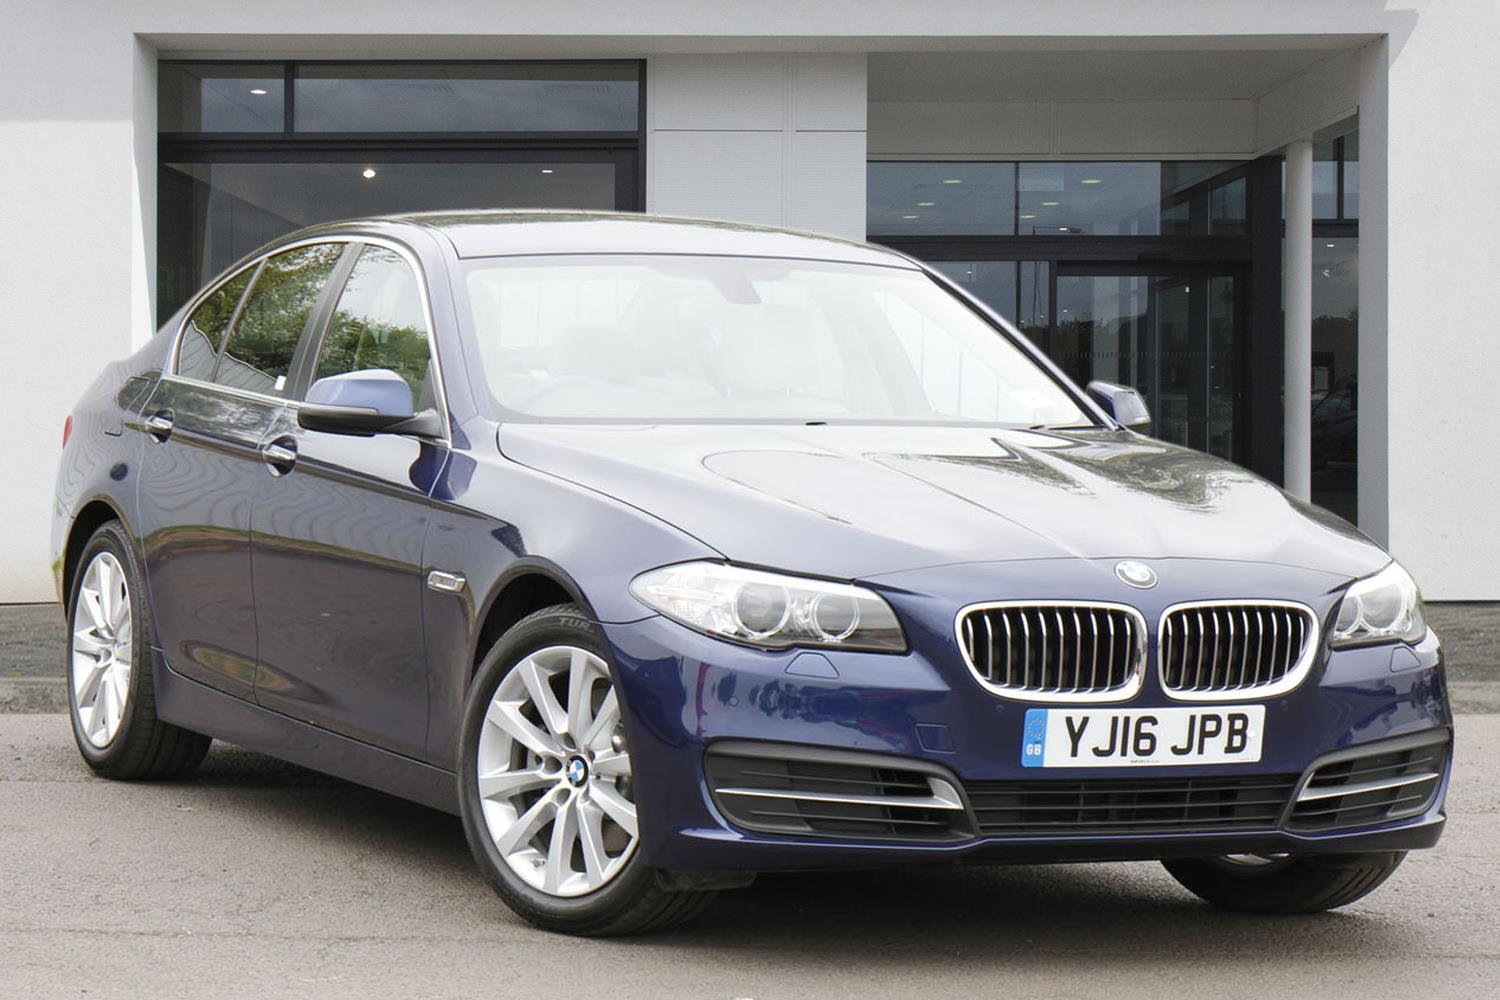 BMW 5 Series Saloon YJ16JPB - Image 10